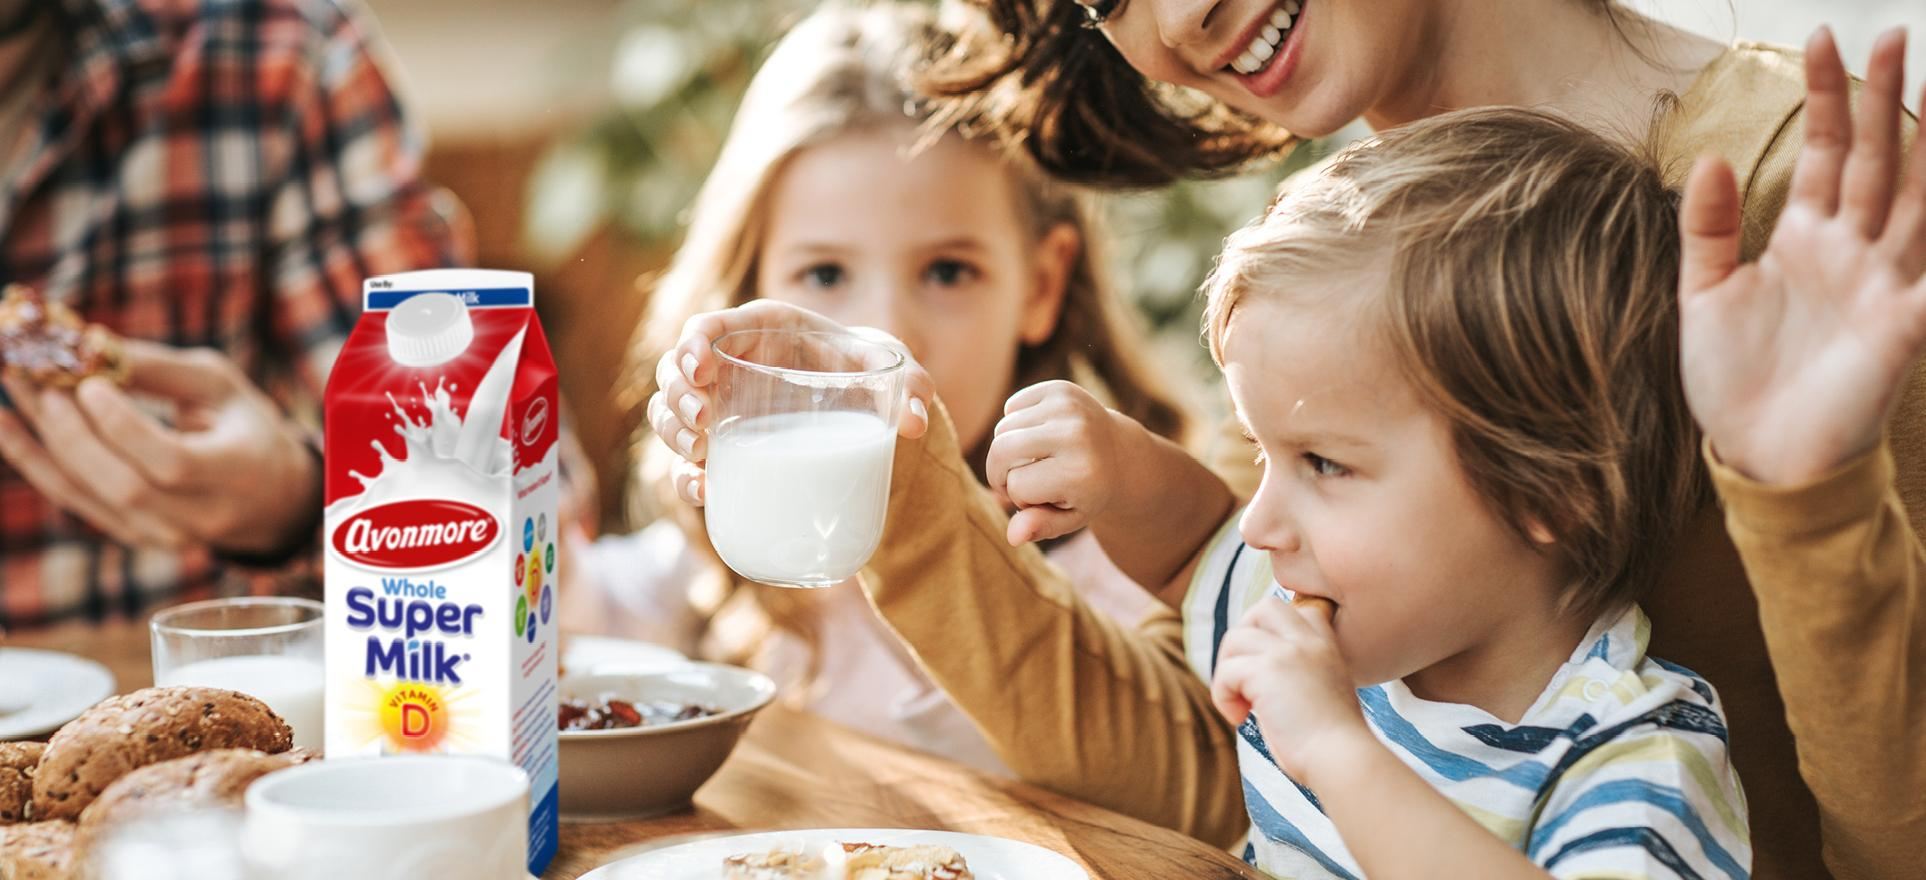 an image of a family enjoying avonmore supermilk